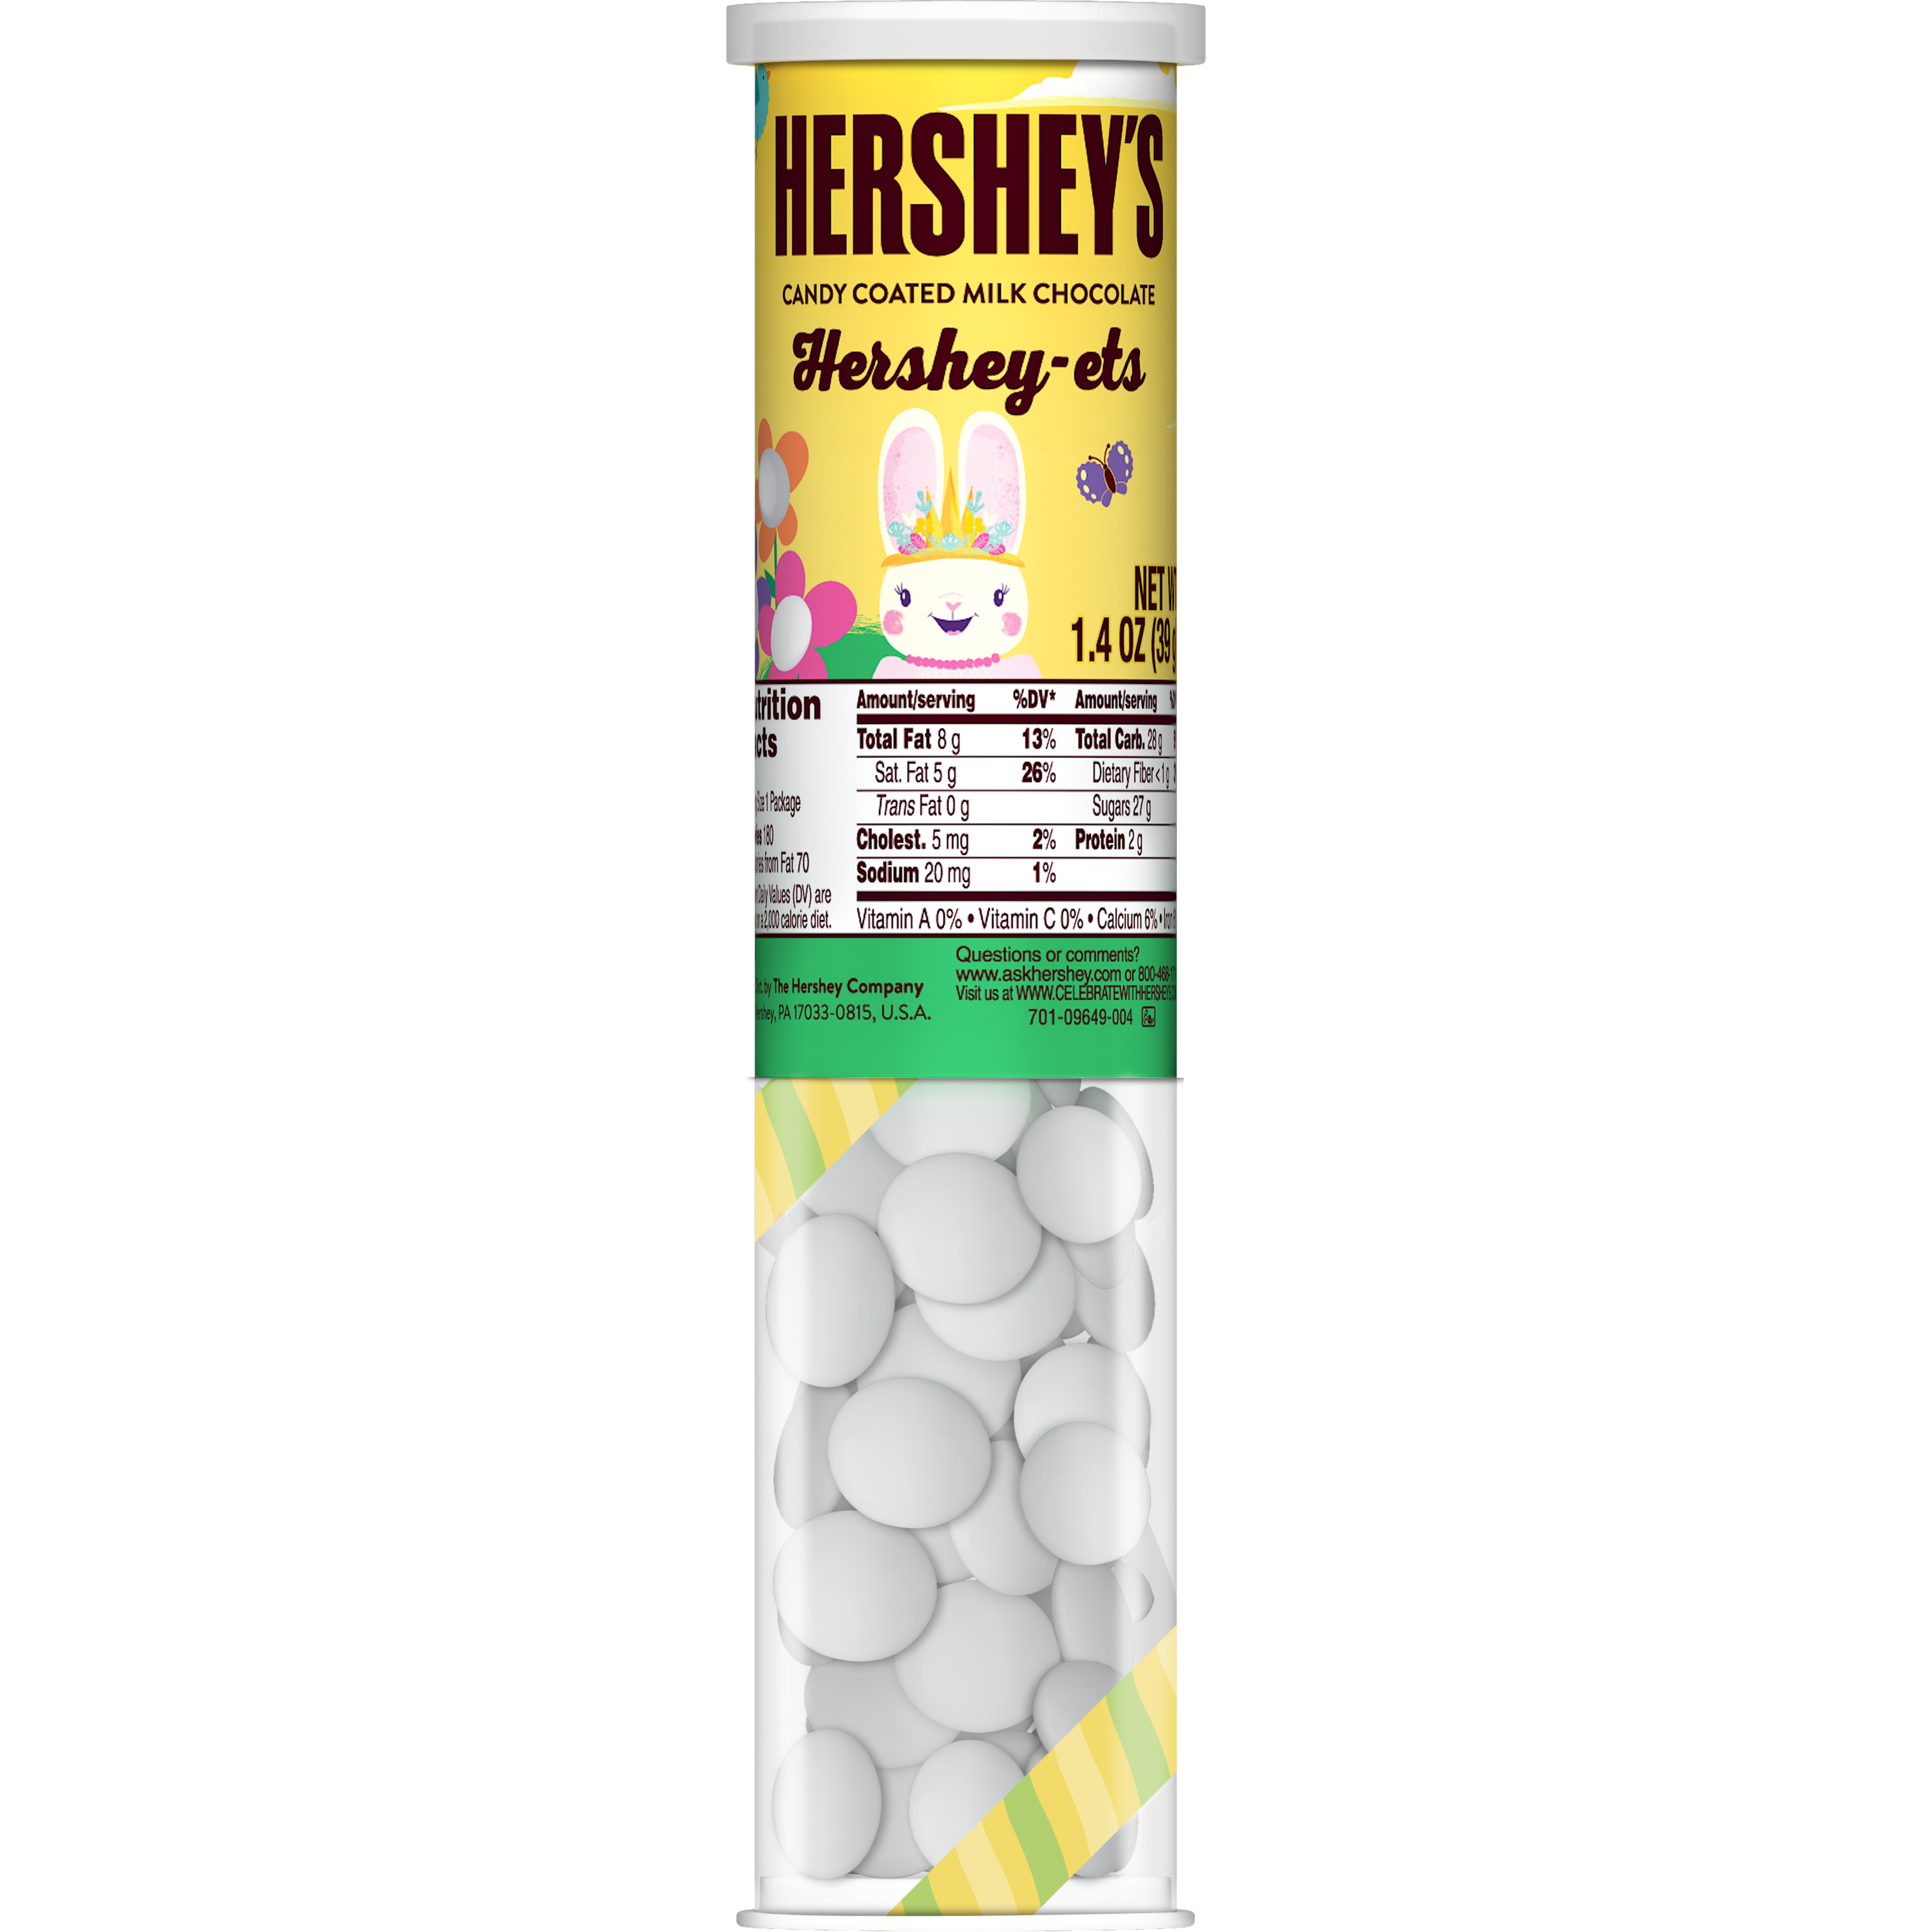 Hershey-ets-yellow.png